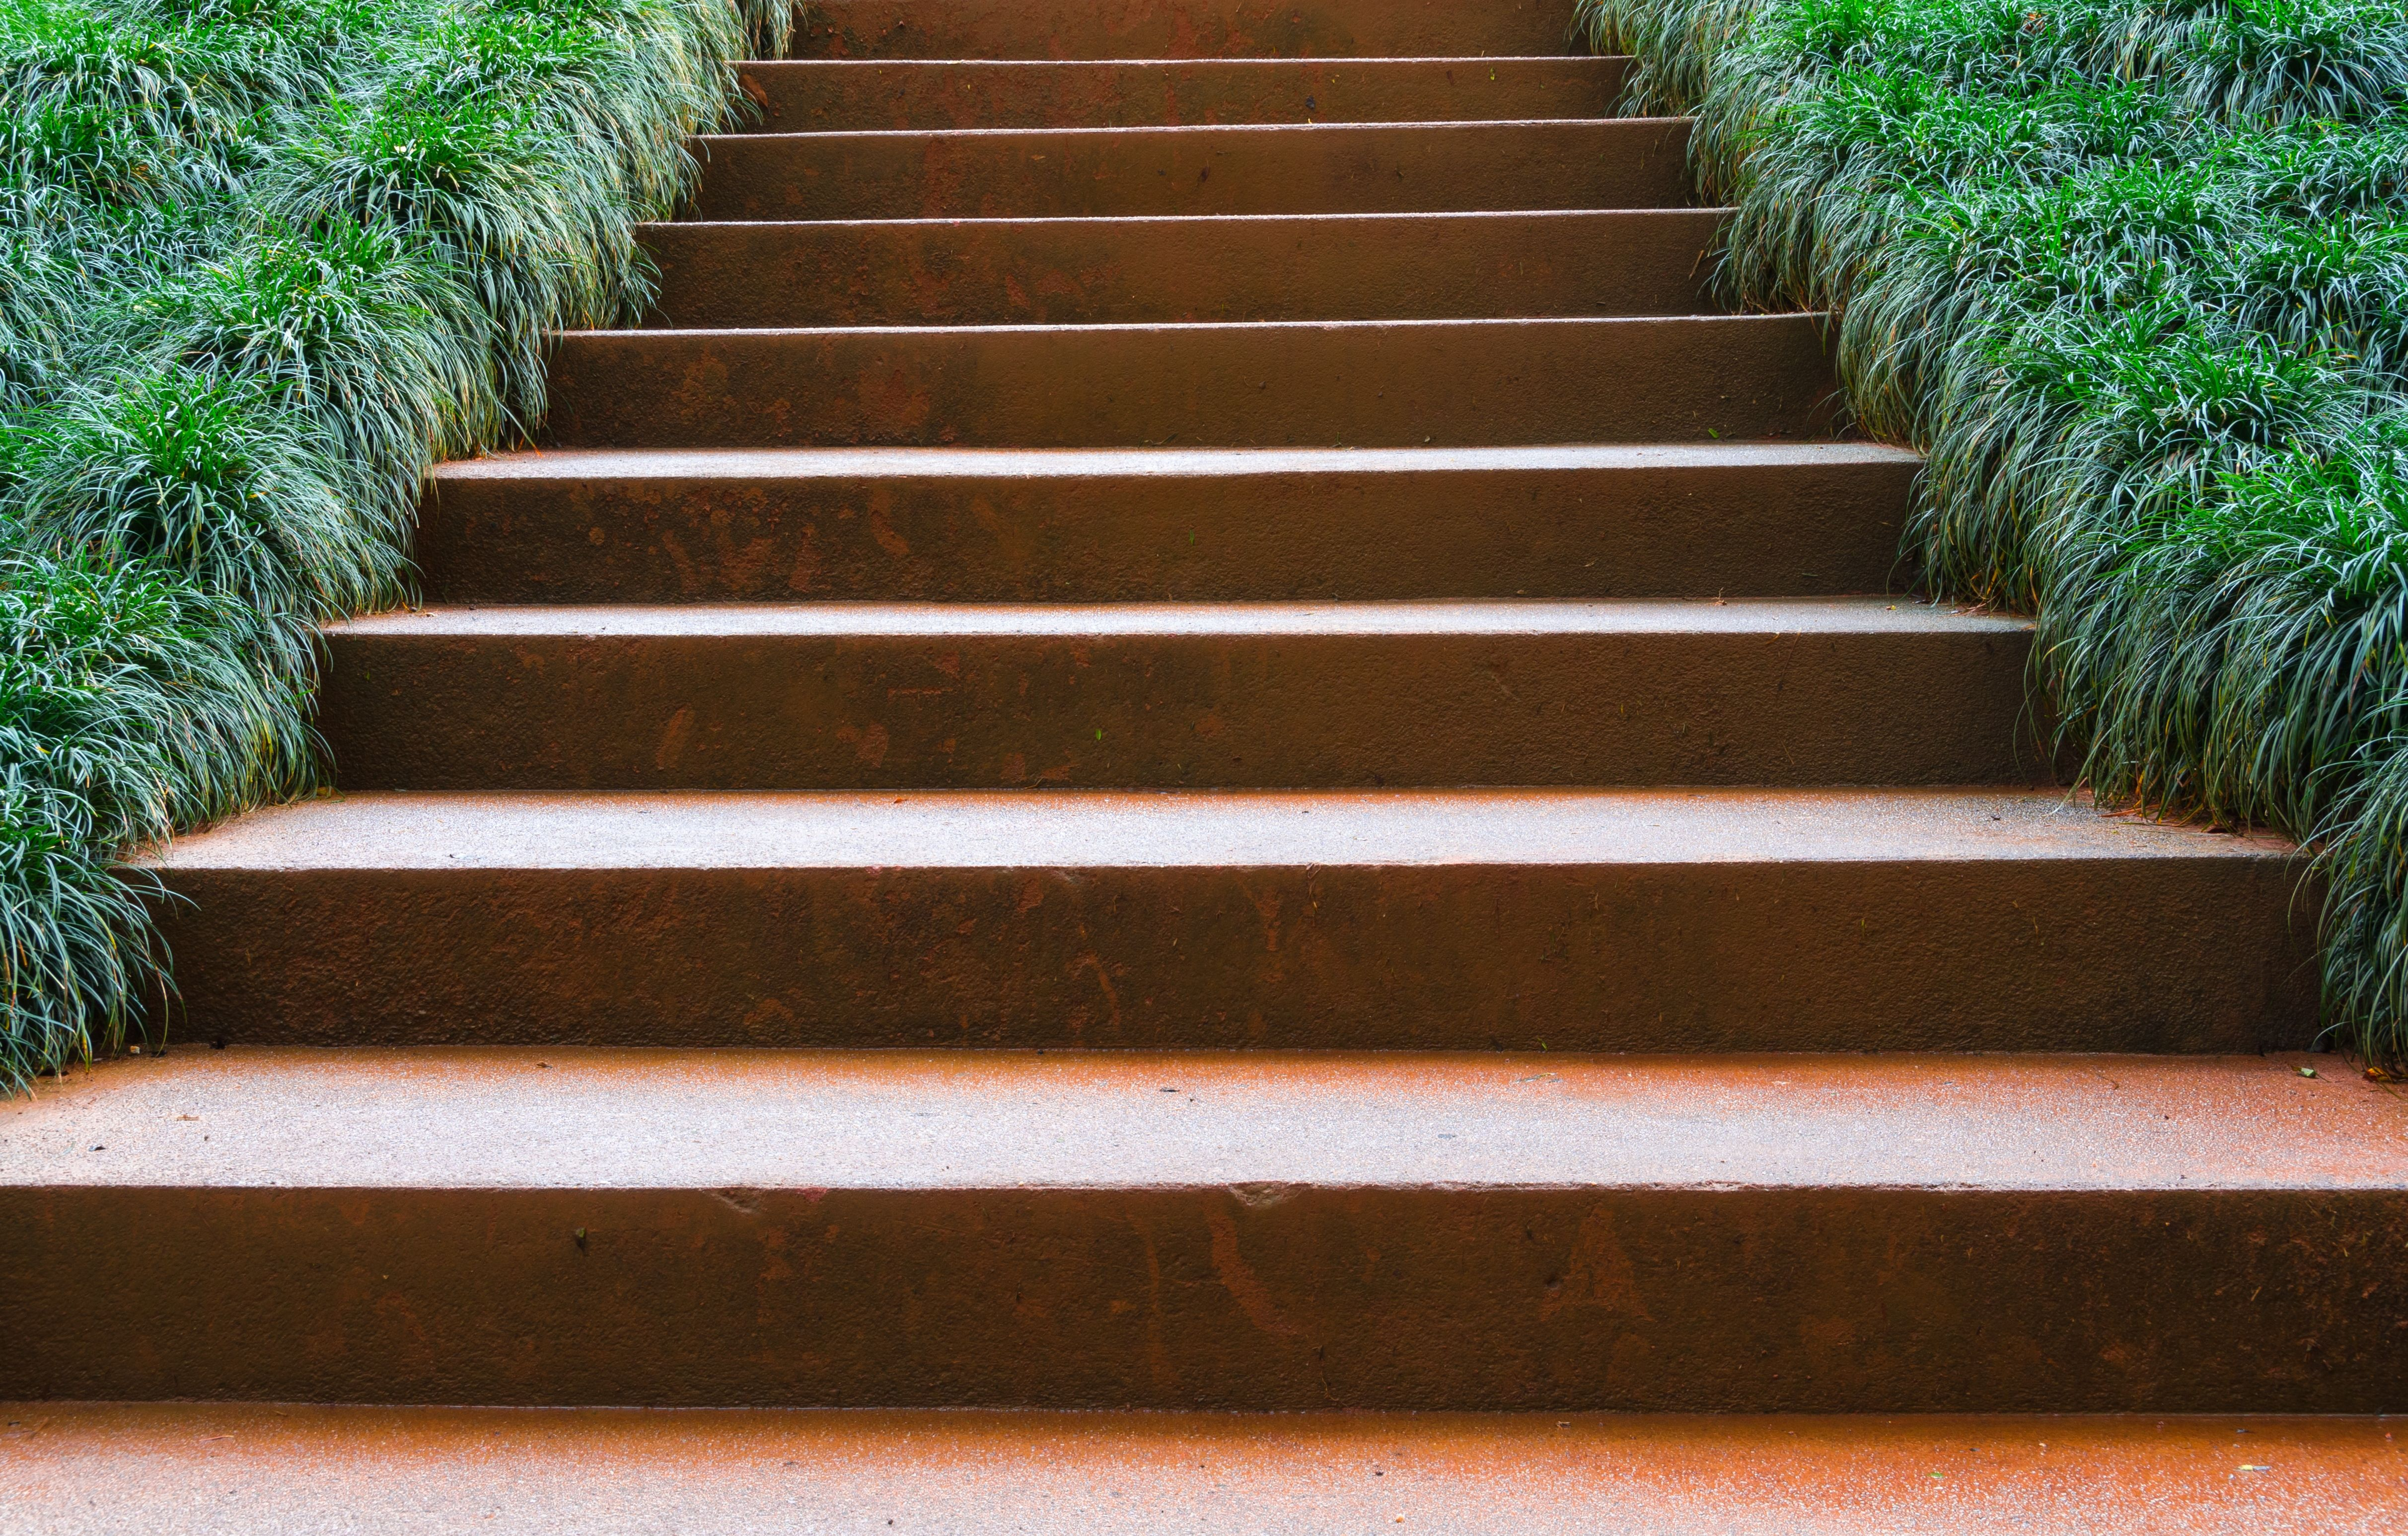 Riverhill Garden Supplies Offer Ready Made Garden Staircases In Corten  Steel For Height Differences In Your Garden. The Width Of The Stairs May  Range From ...